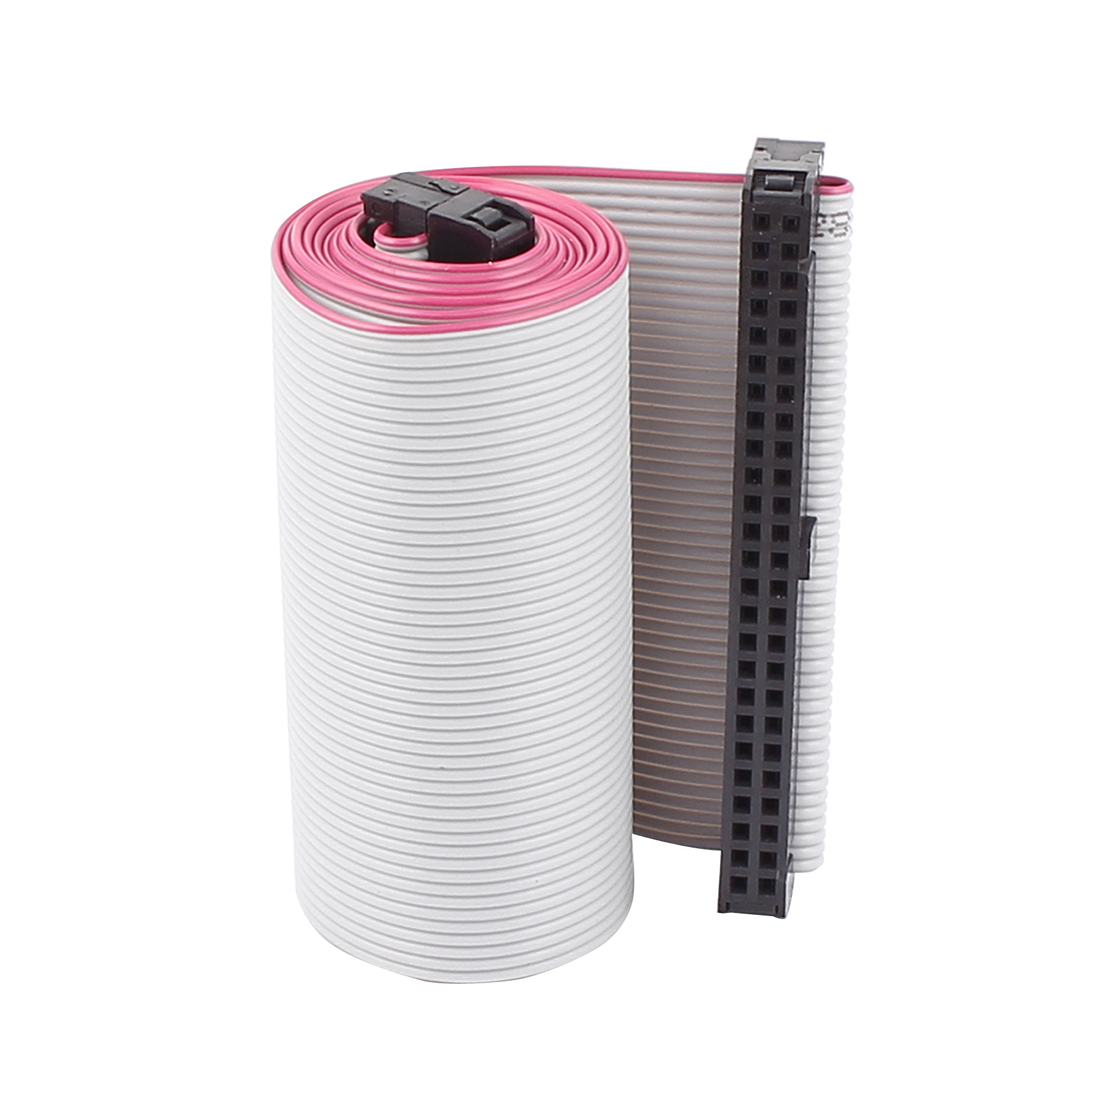 2.54mm Pitch 50 Pin 50 Wire Female to Female IDC Flat Ribbon Cable 66cm Long